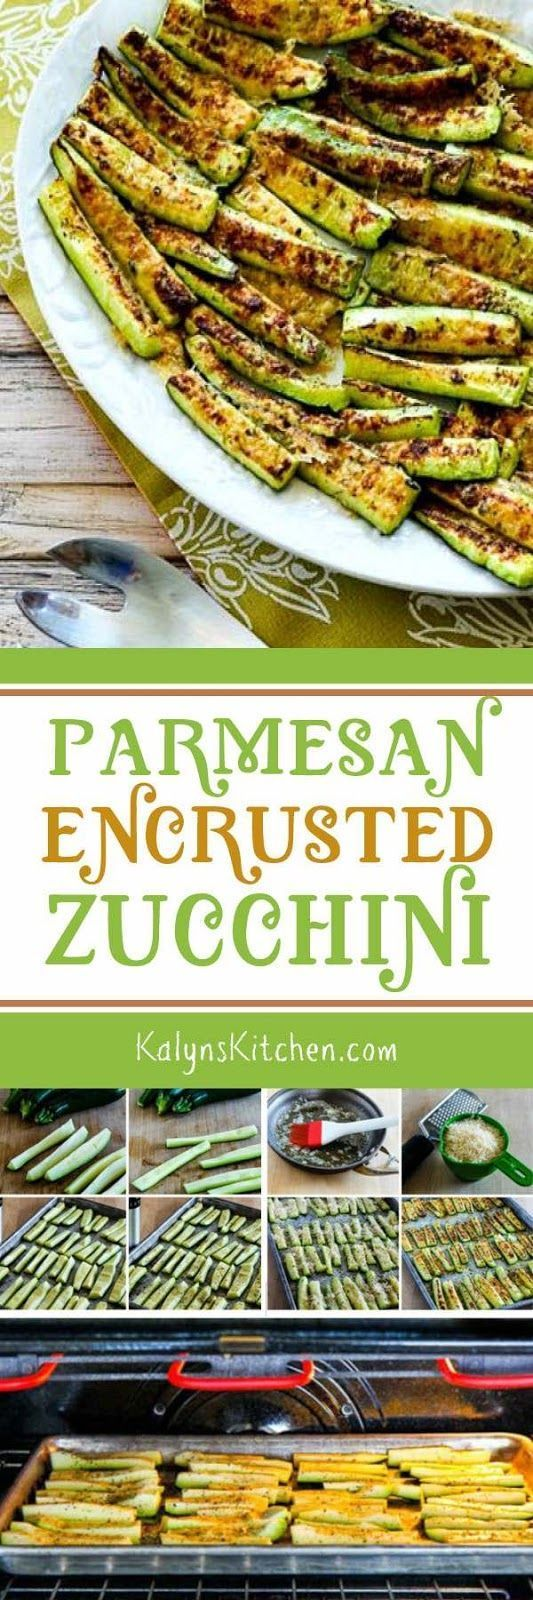 This easy Parmesan Encrusted Zucchini is one of The Top Ten Most Popular Low-Carb Zucchini Recipes from Kalyn's Kitchen, because who doesn't love zucchini + cheese! And this tasty recipe is also gluten-free, meatless, and South Beach Diet friendly. [found on KalynsKitchen.com]